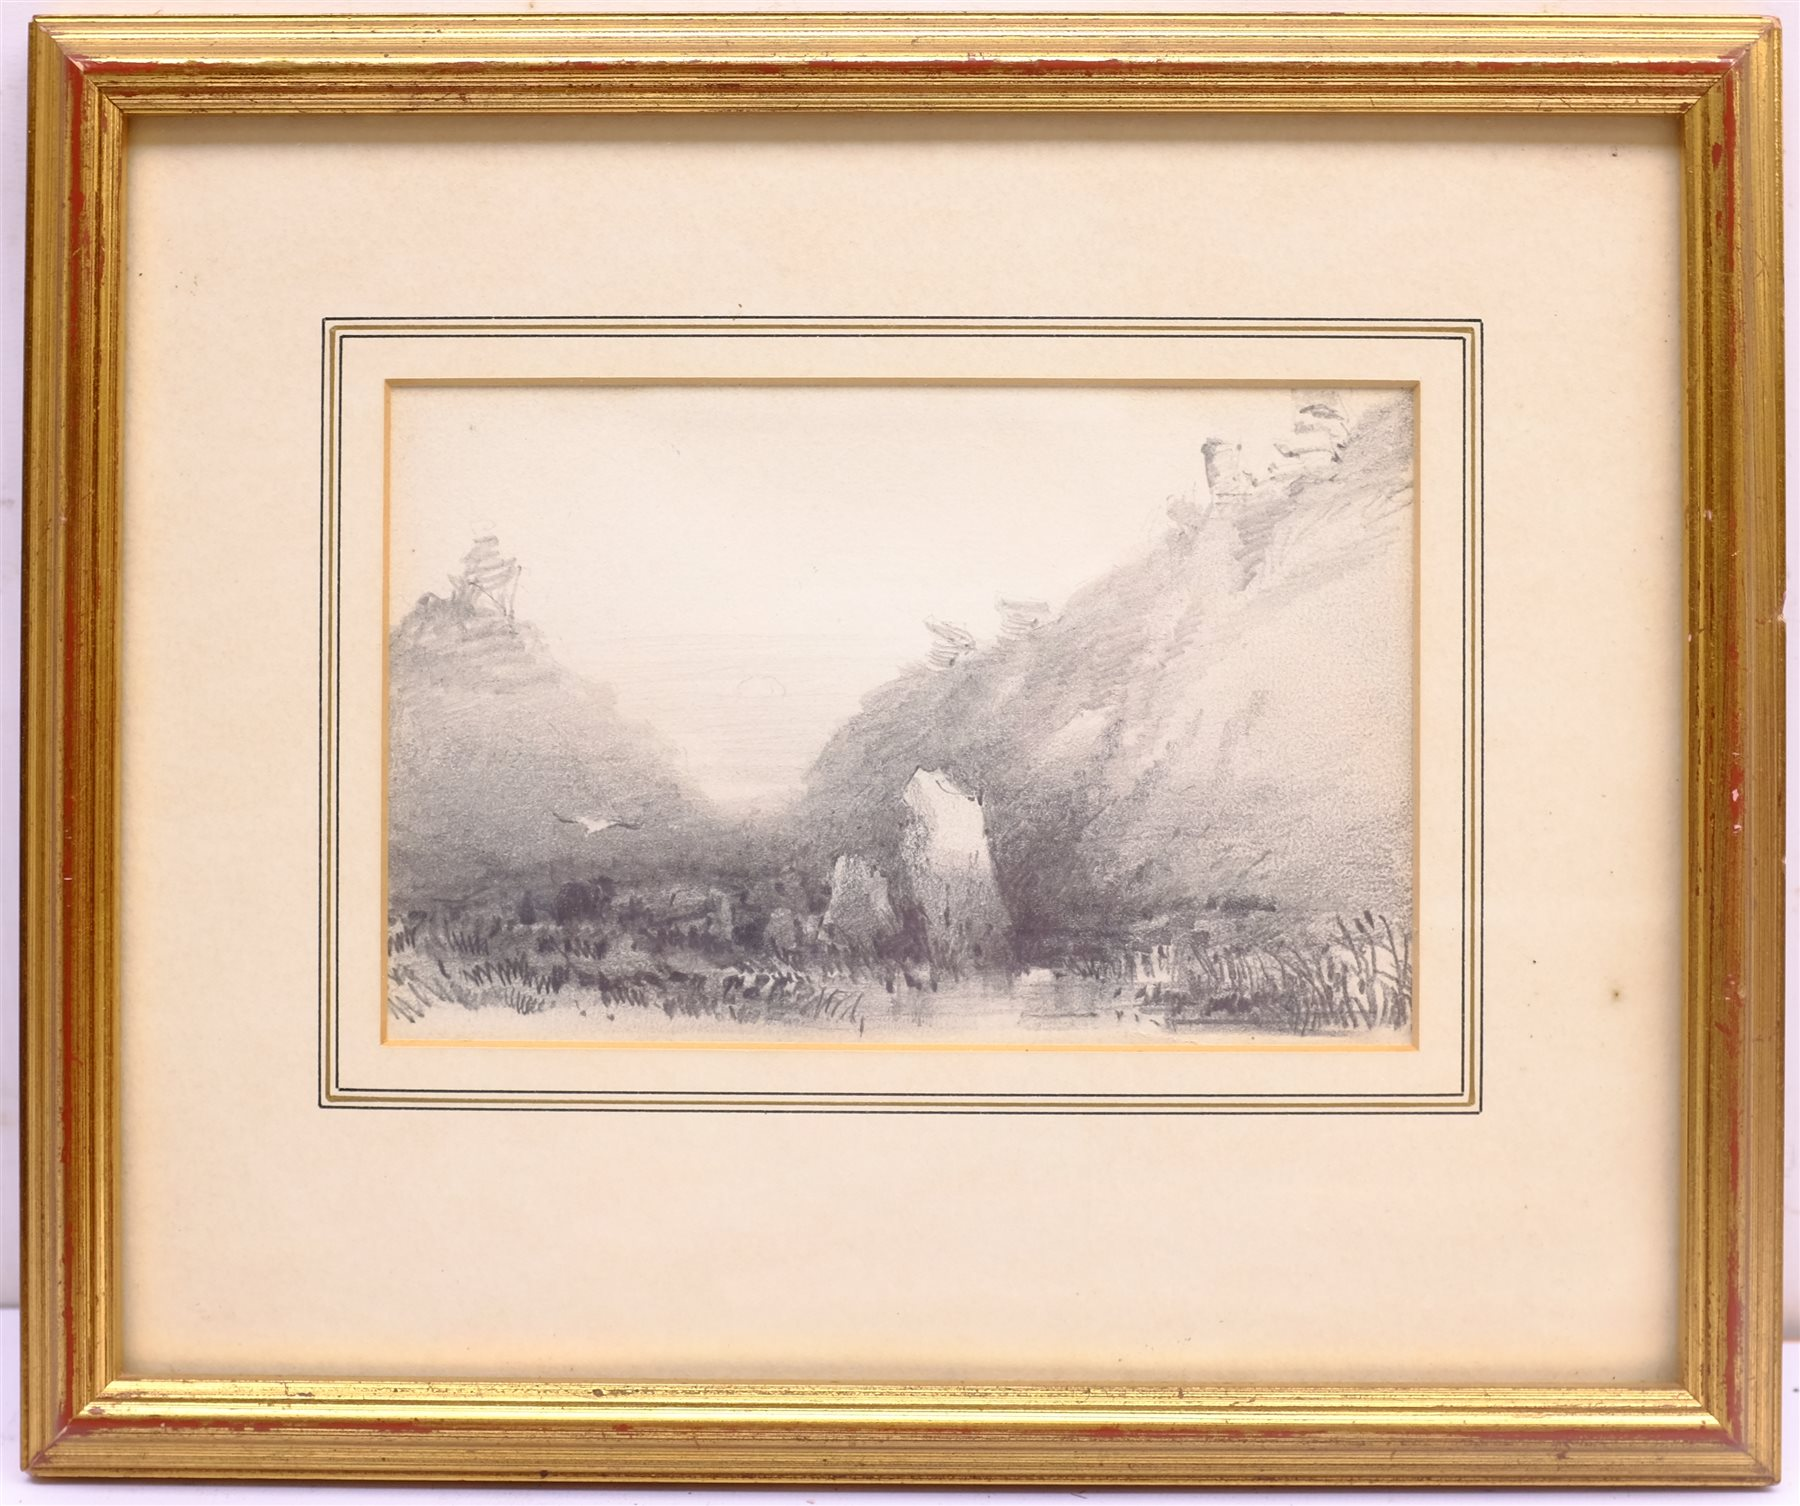 Henry Barlow Carter (British 1804-1868): 'Valley of the Rocks Lynton Twilight', pencil unsigned, tit - Image 3 of 4